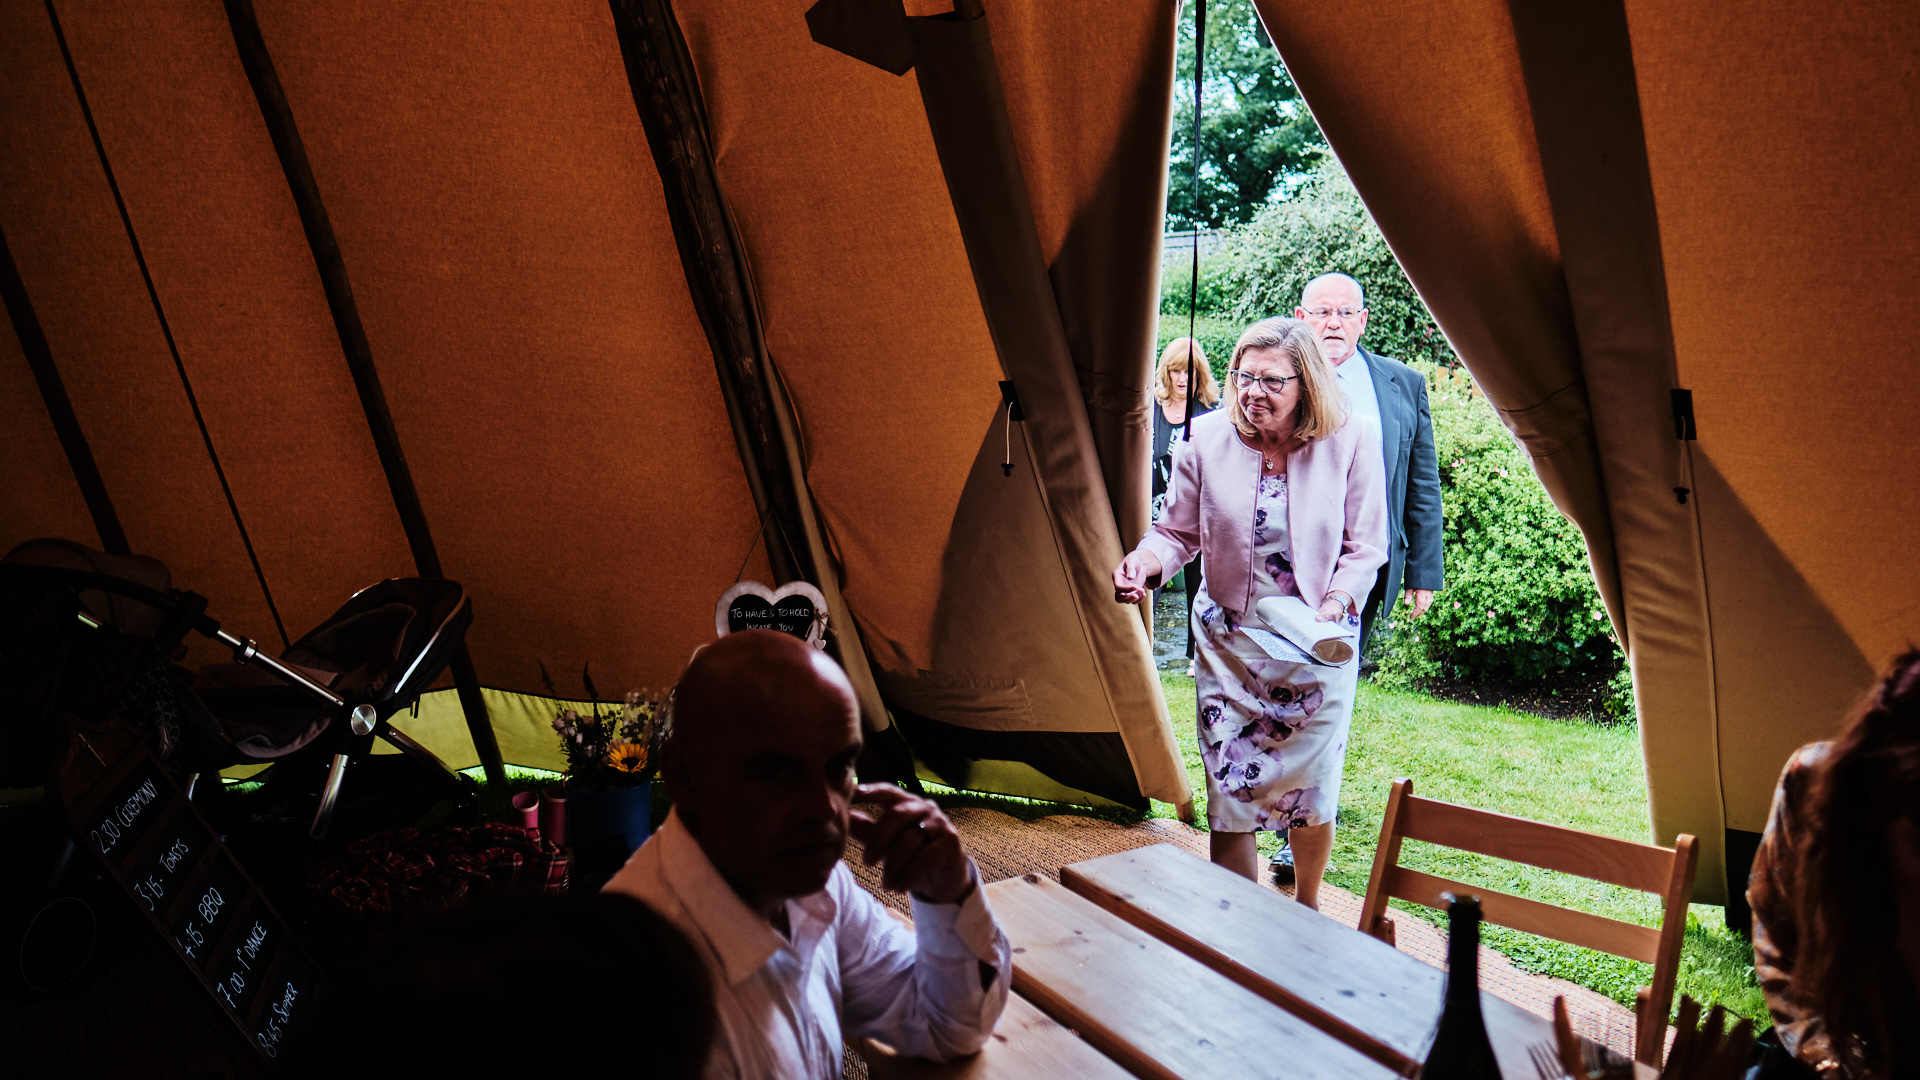 colour photograph of wedding guests arriving inside a tipi for a wedding